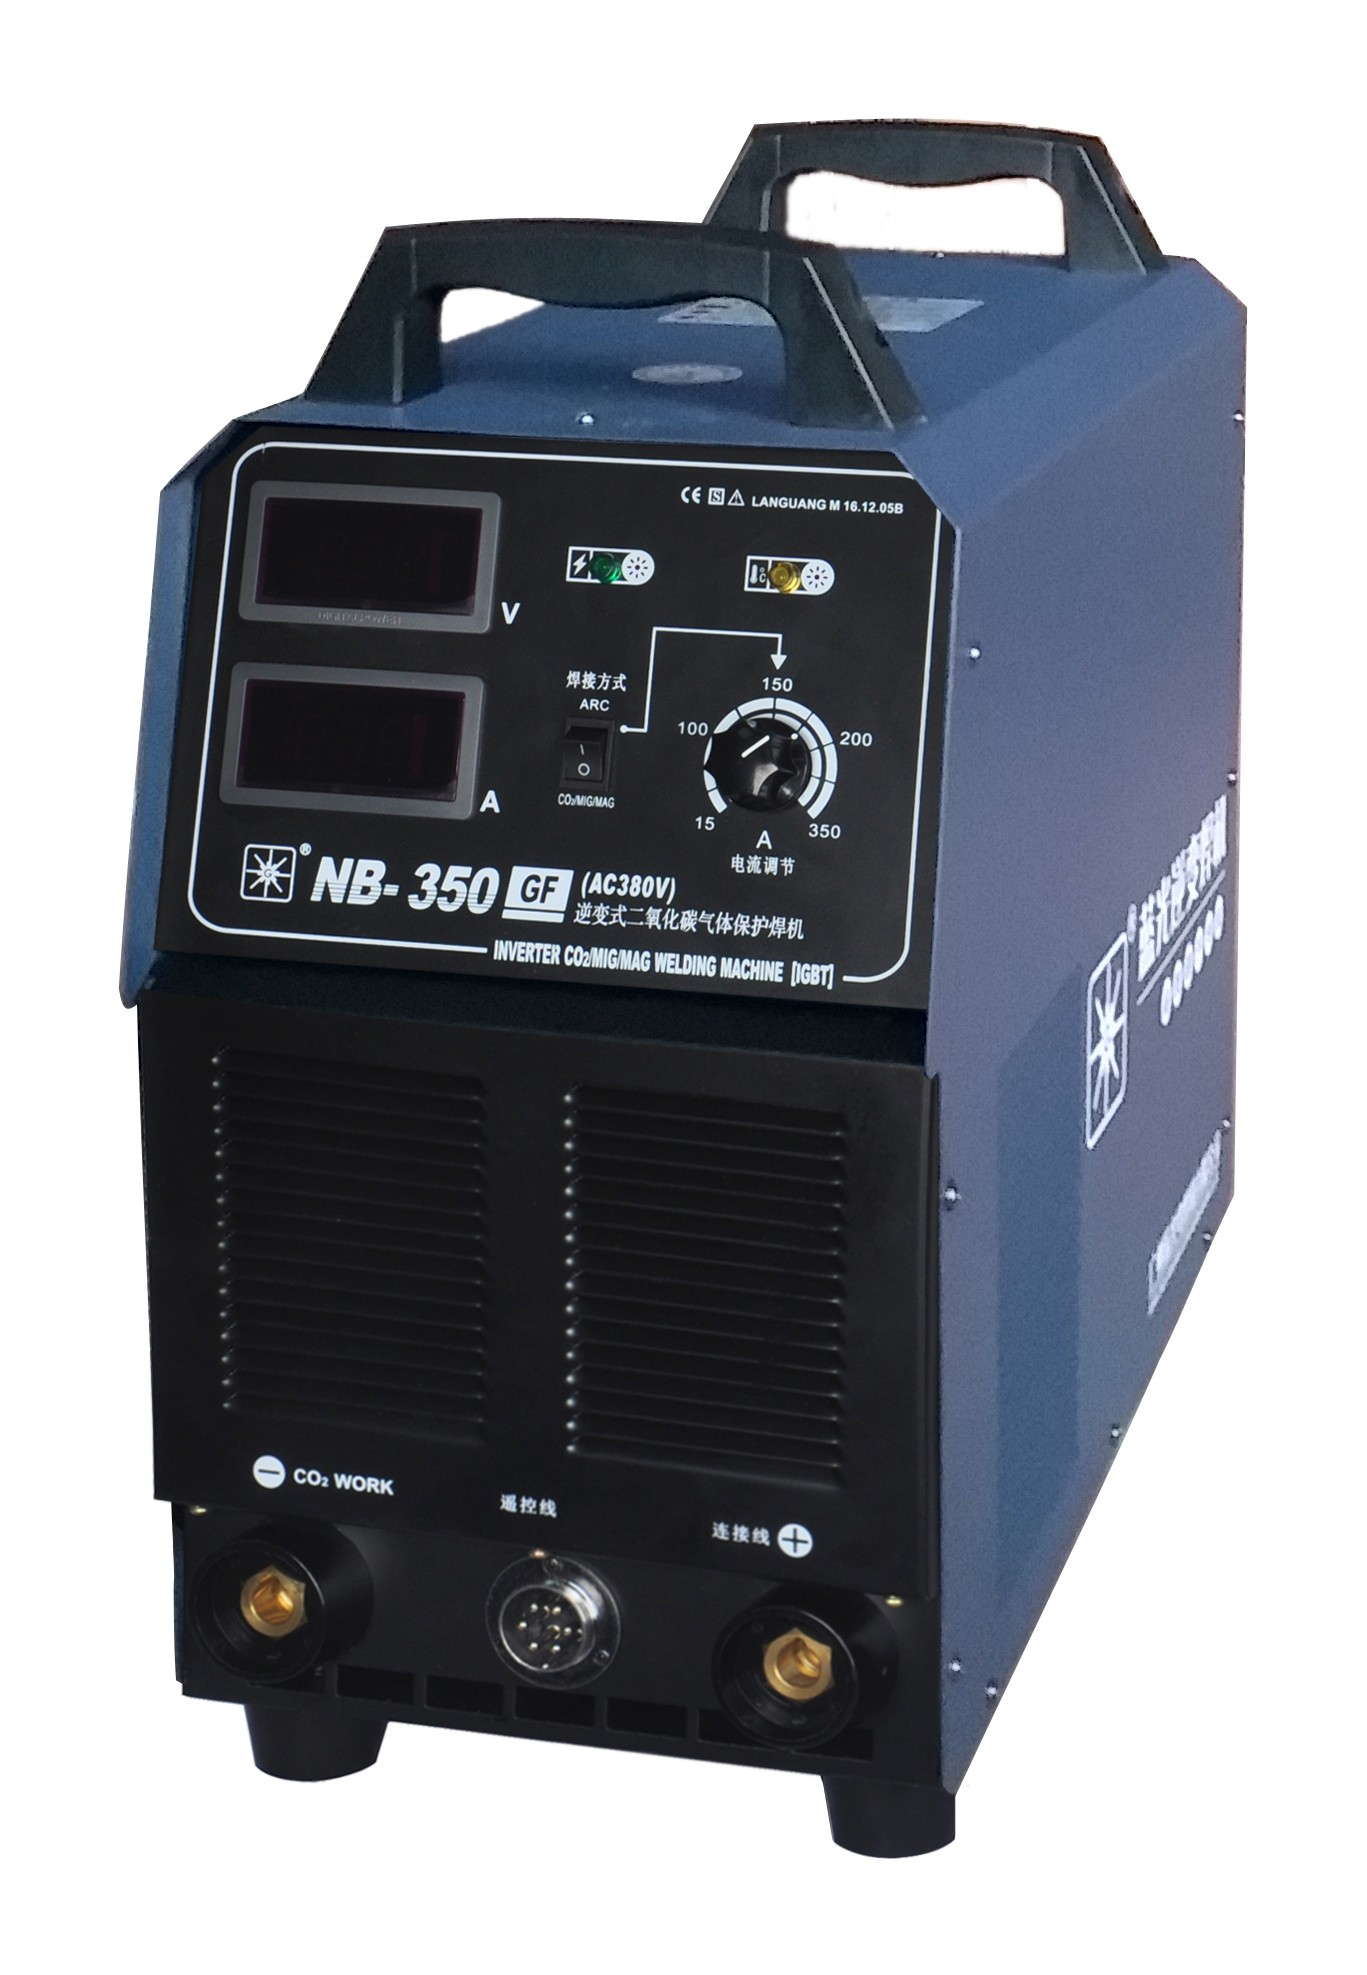 NB-350GF (AC380V) inverter split CO2 welding machine